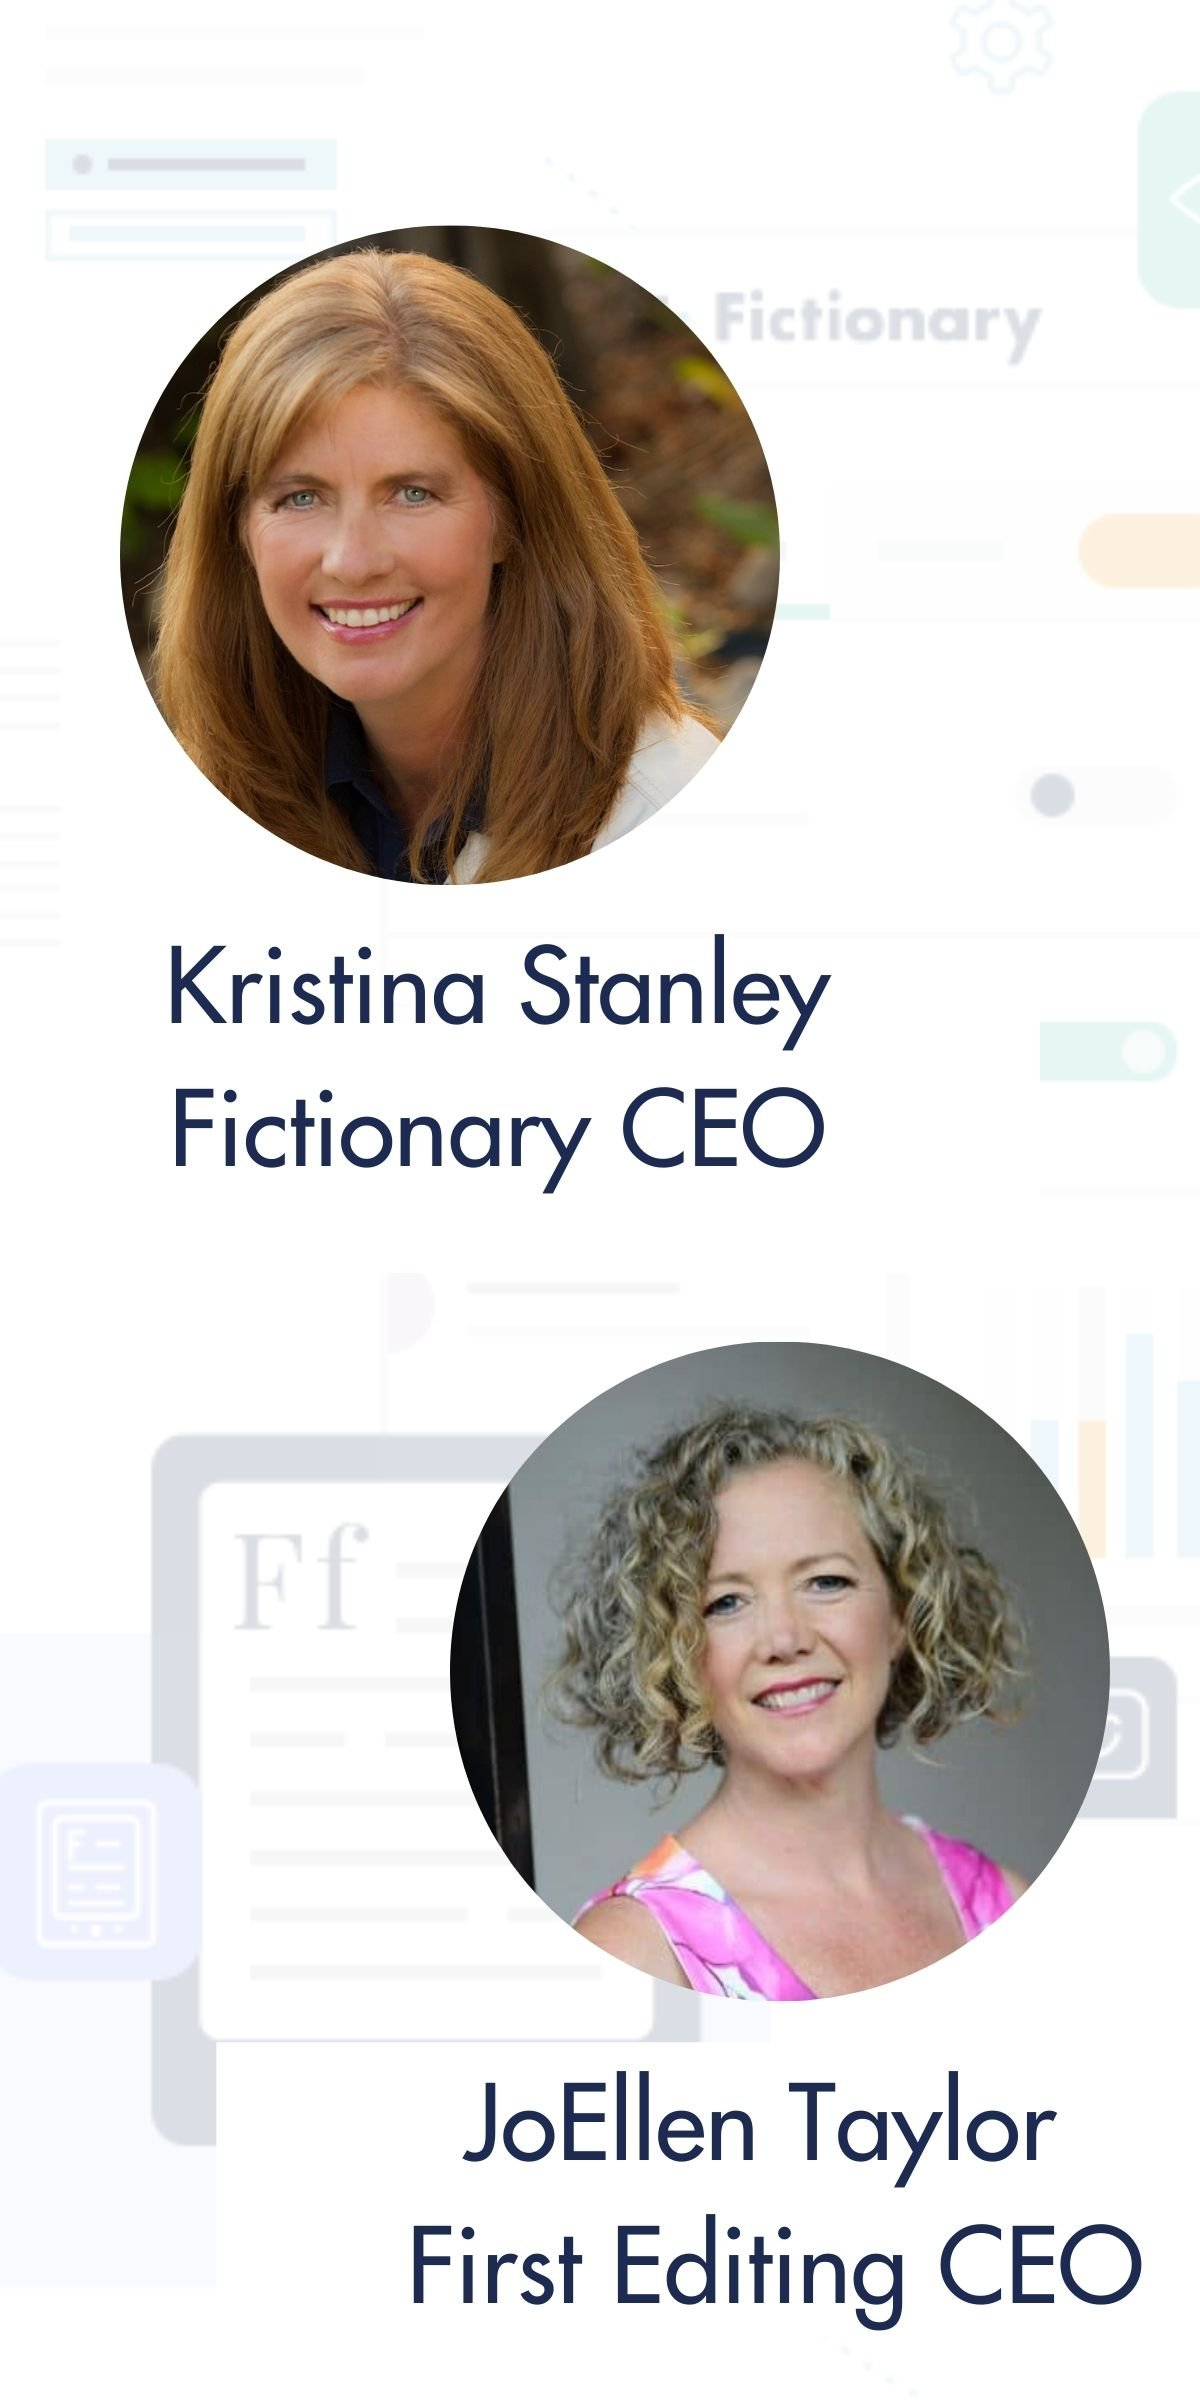 Fictionary & First Editing